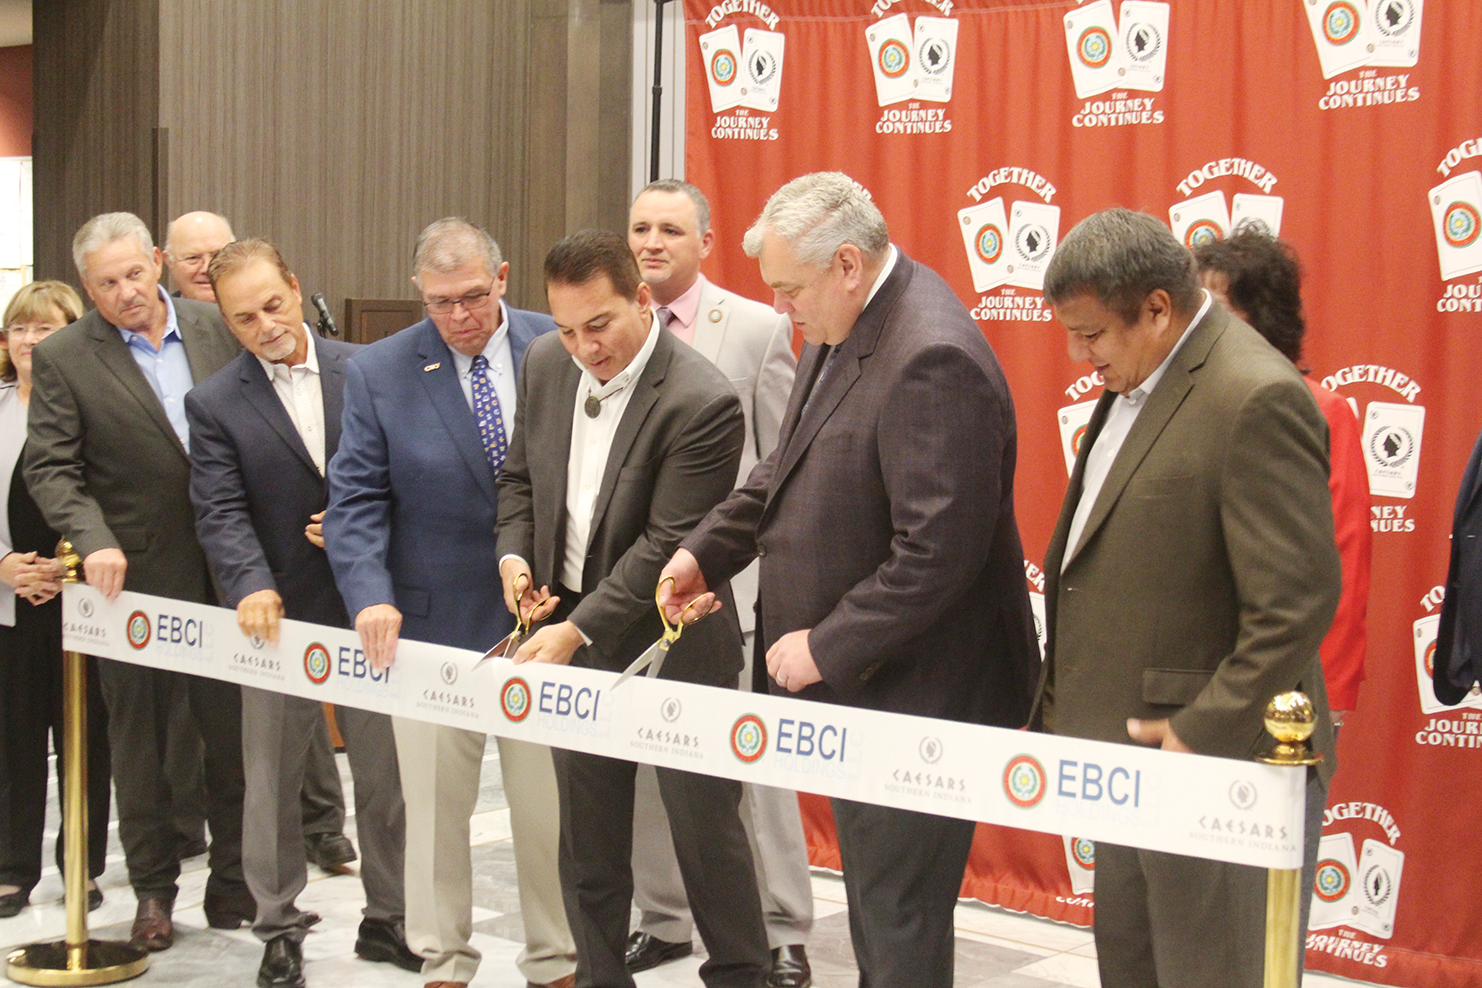 EBCI makes it official